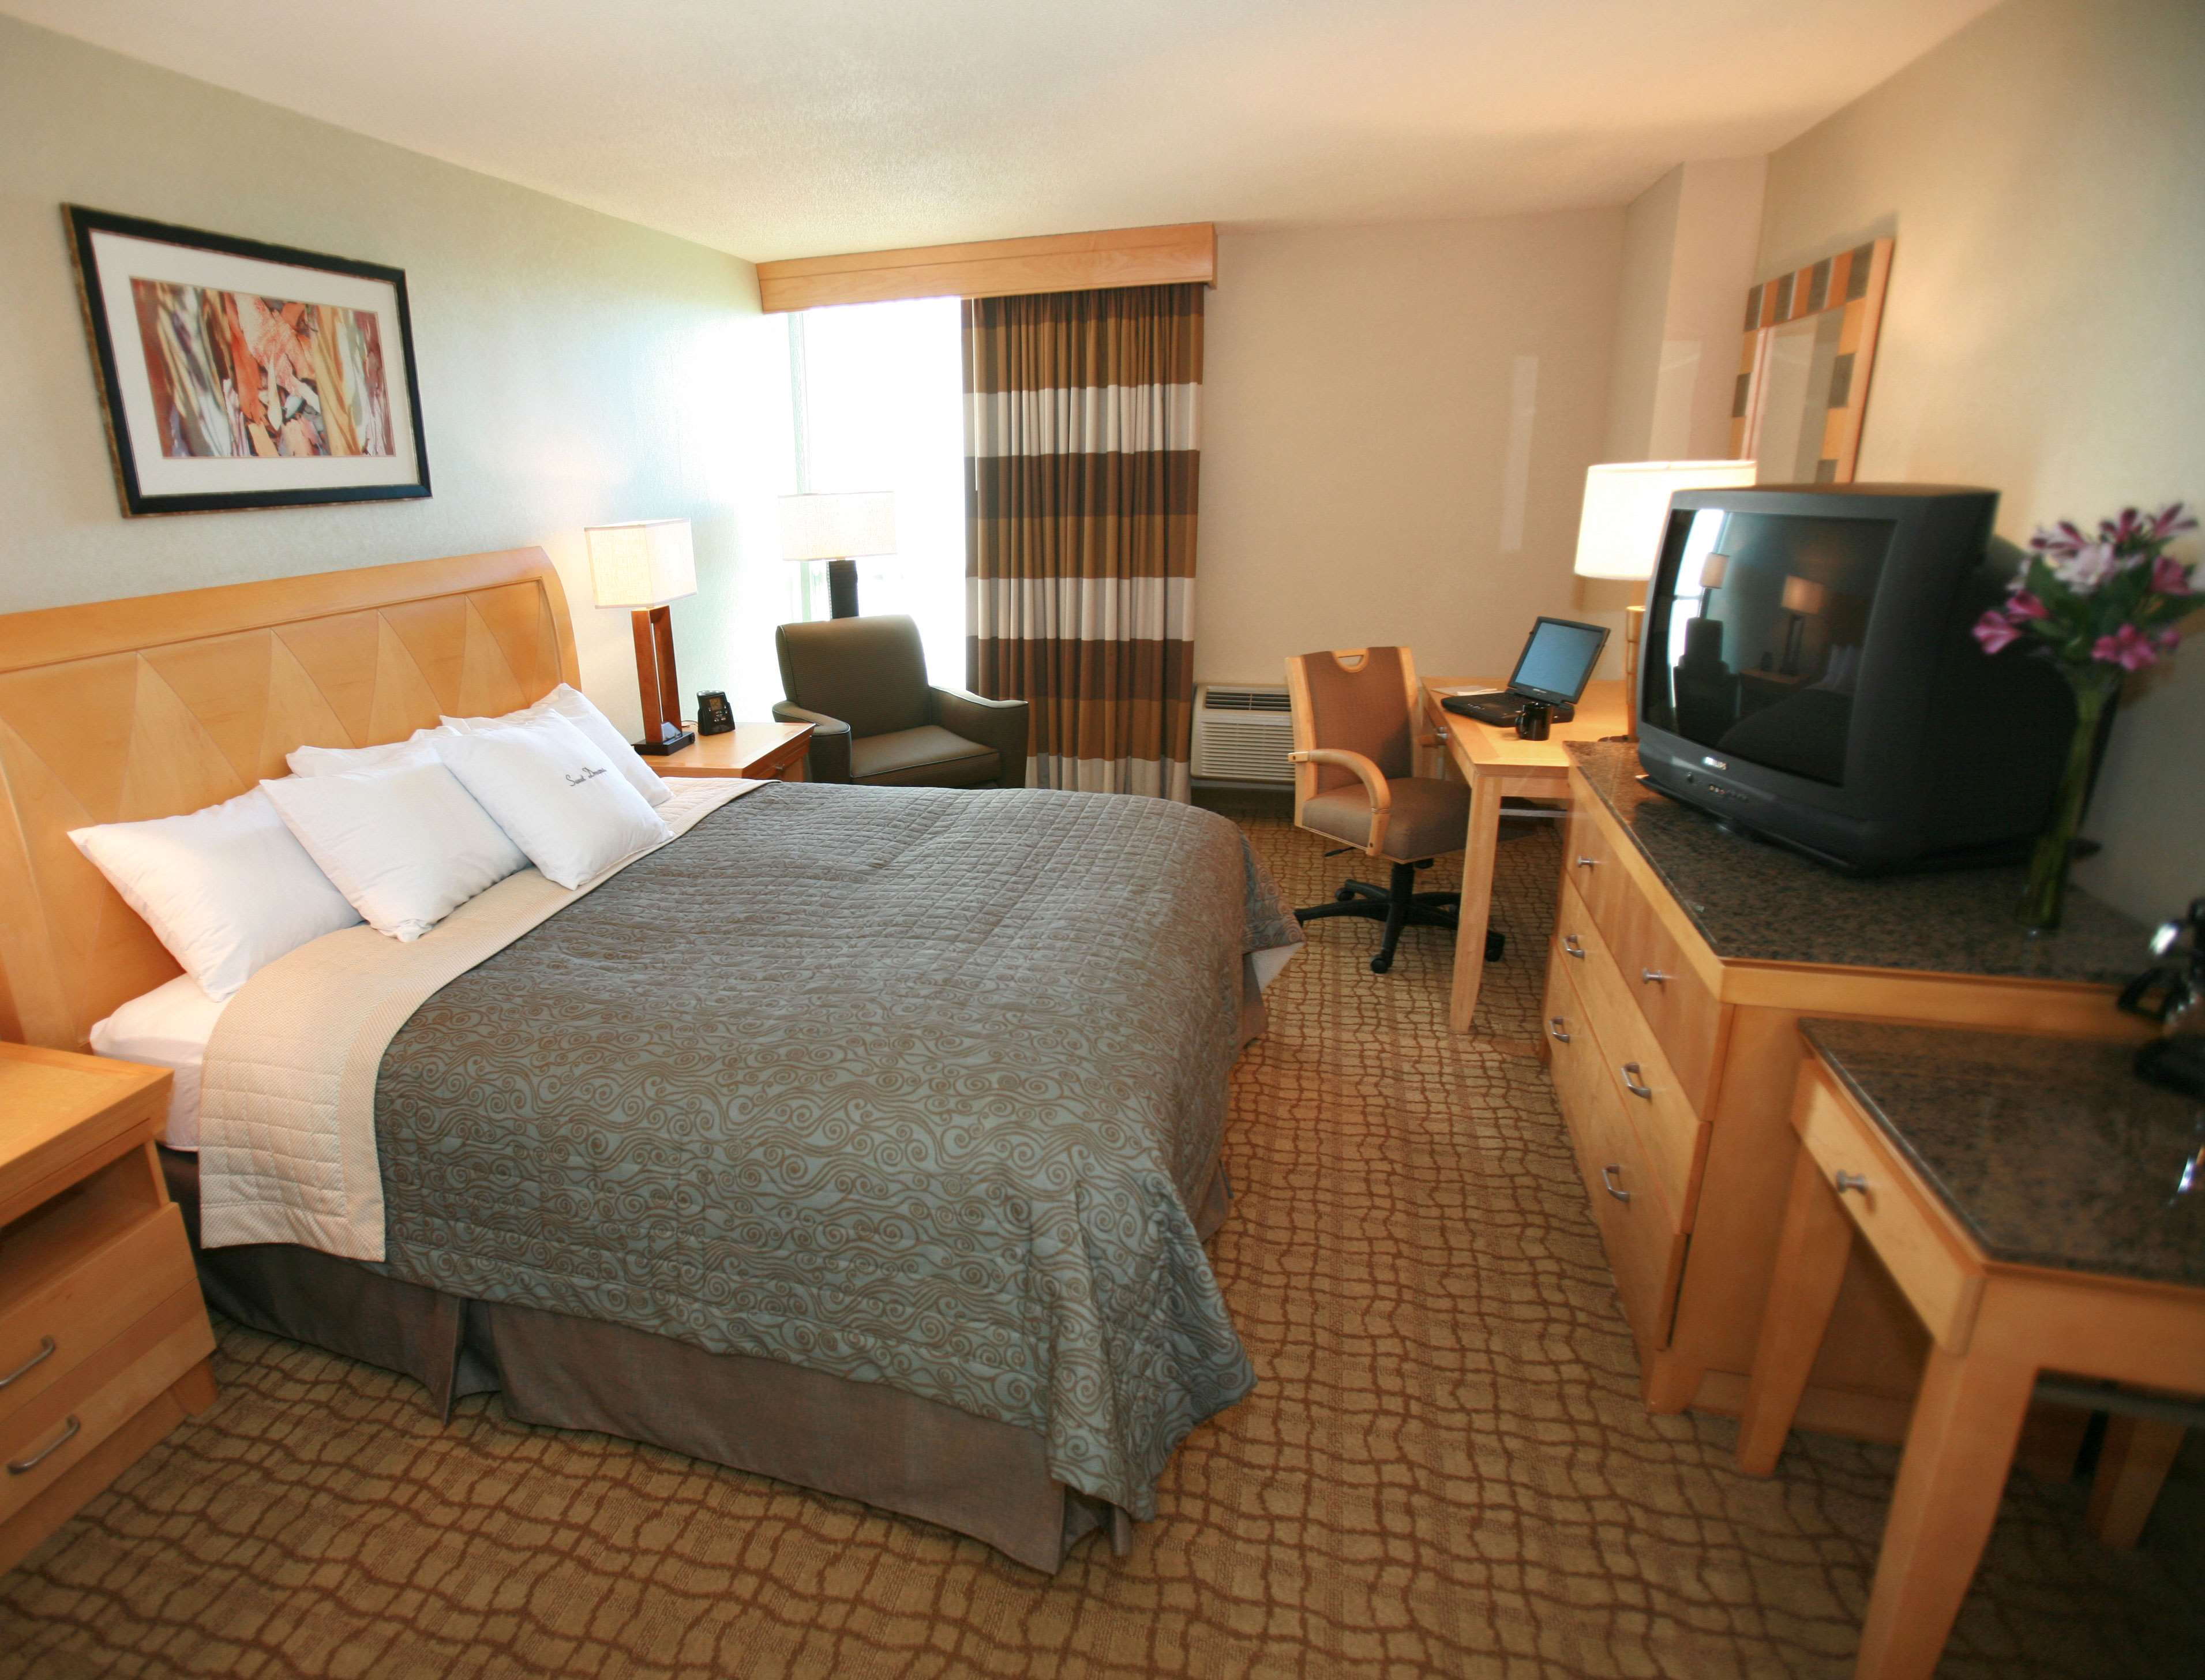 DoubleTree by Hilton Hotel Virginia Beach image 17